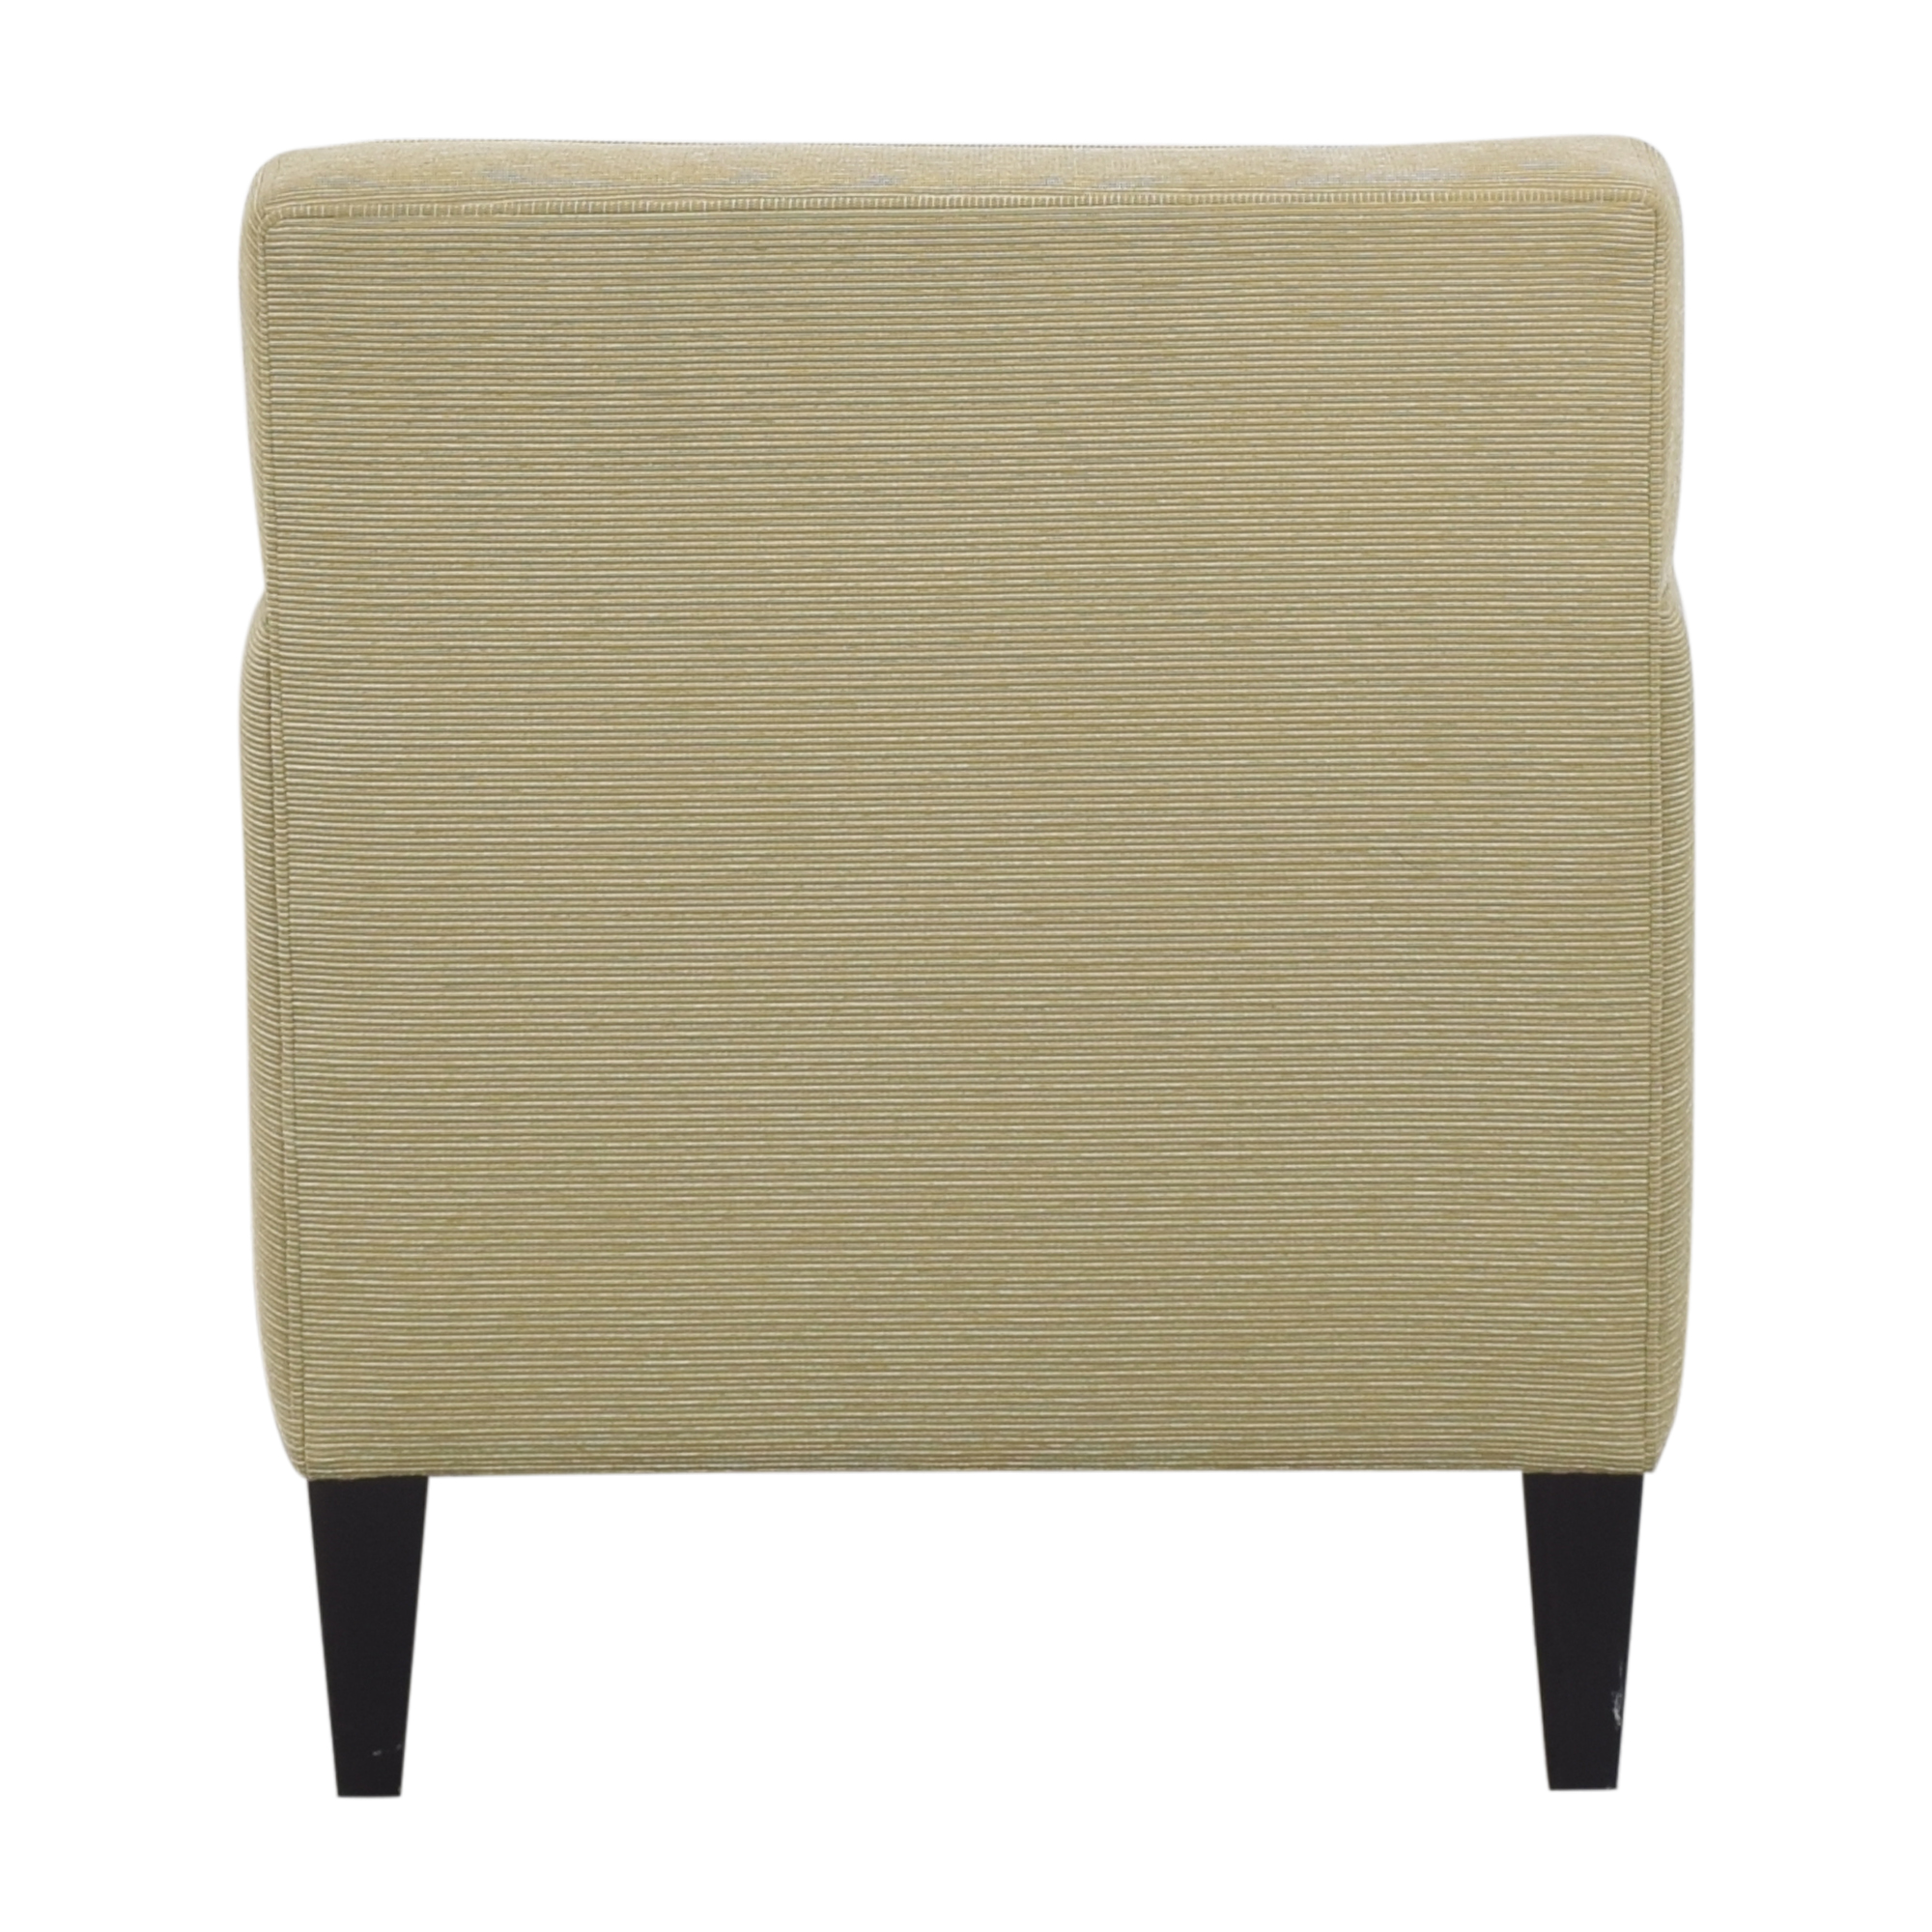 Crate & Barrel Crate & Barrel Tight Back Accent Chair coupon